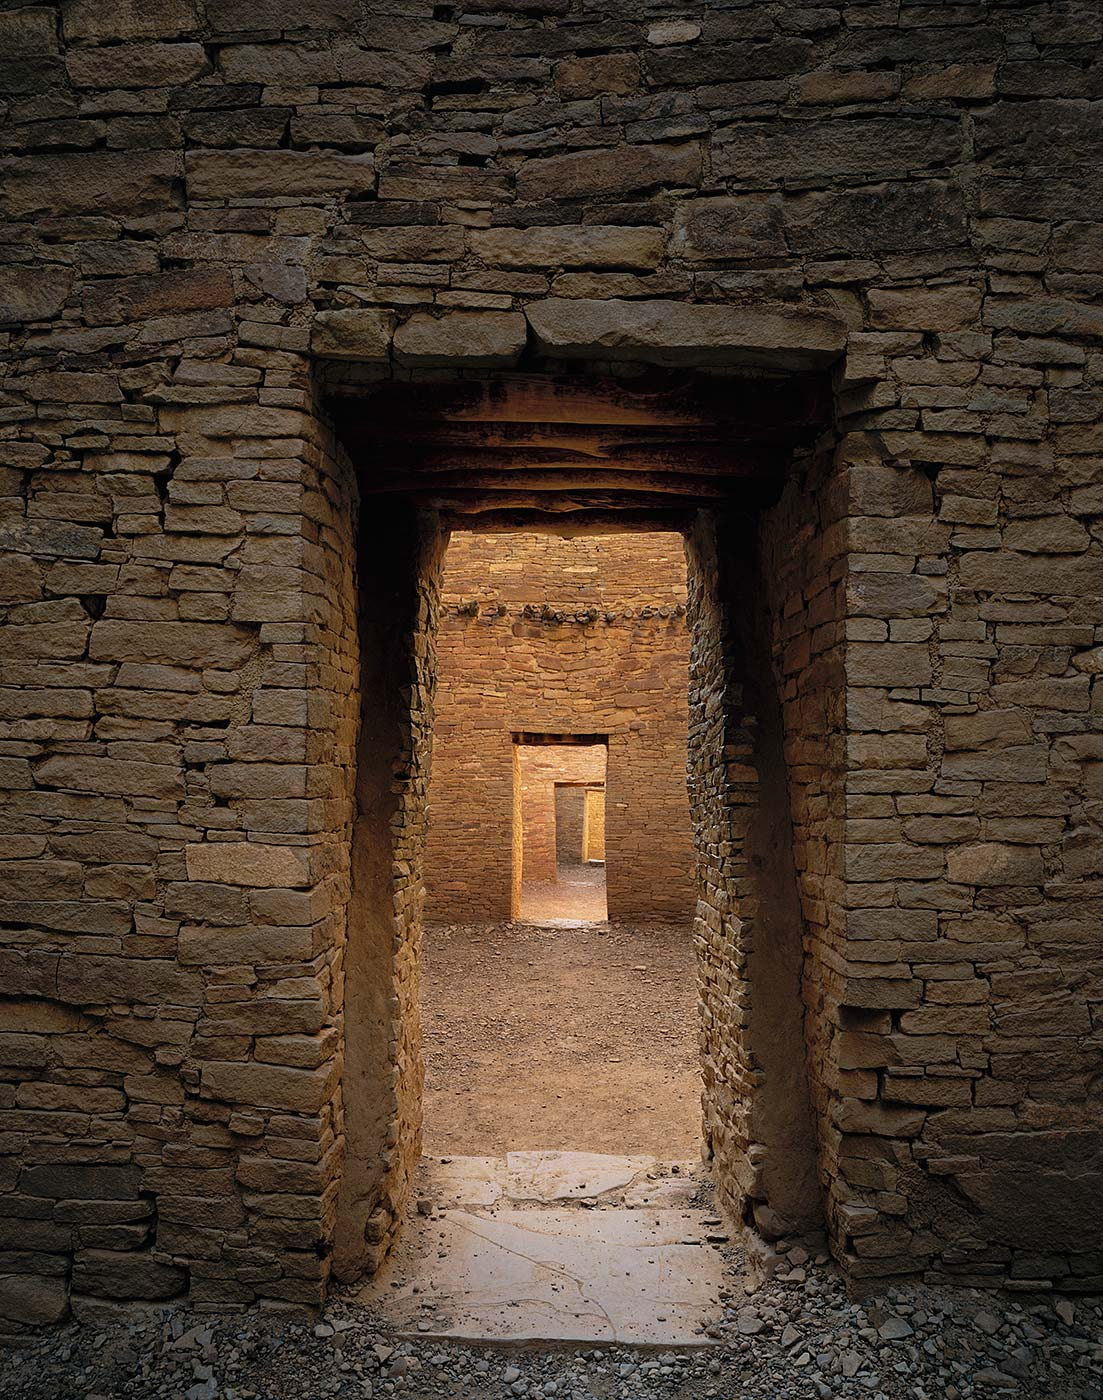 421 Illuminated Doorways, Chaco Culture National Park, New Mexico